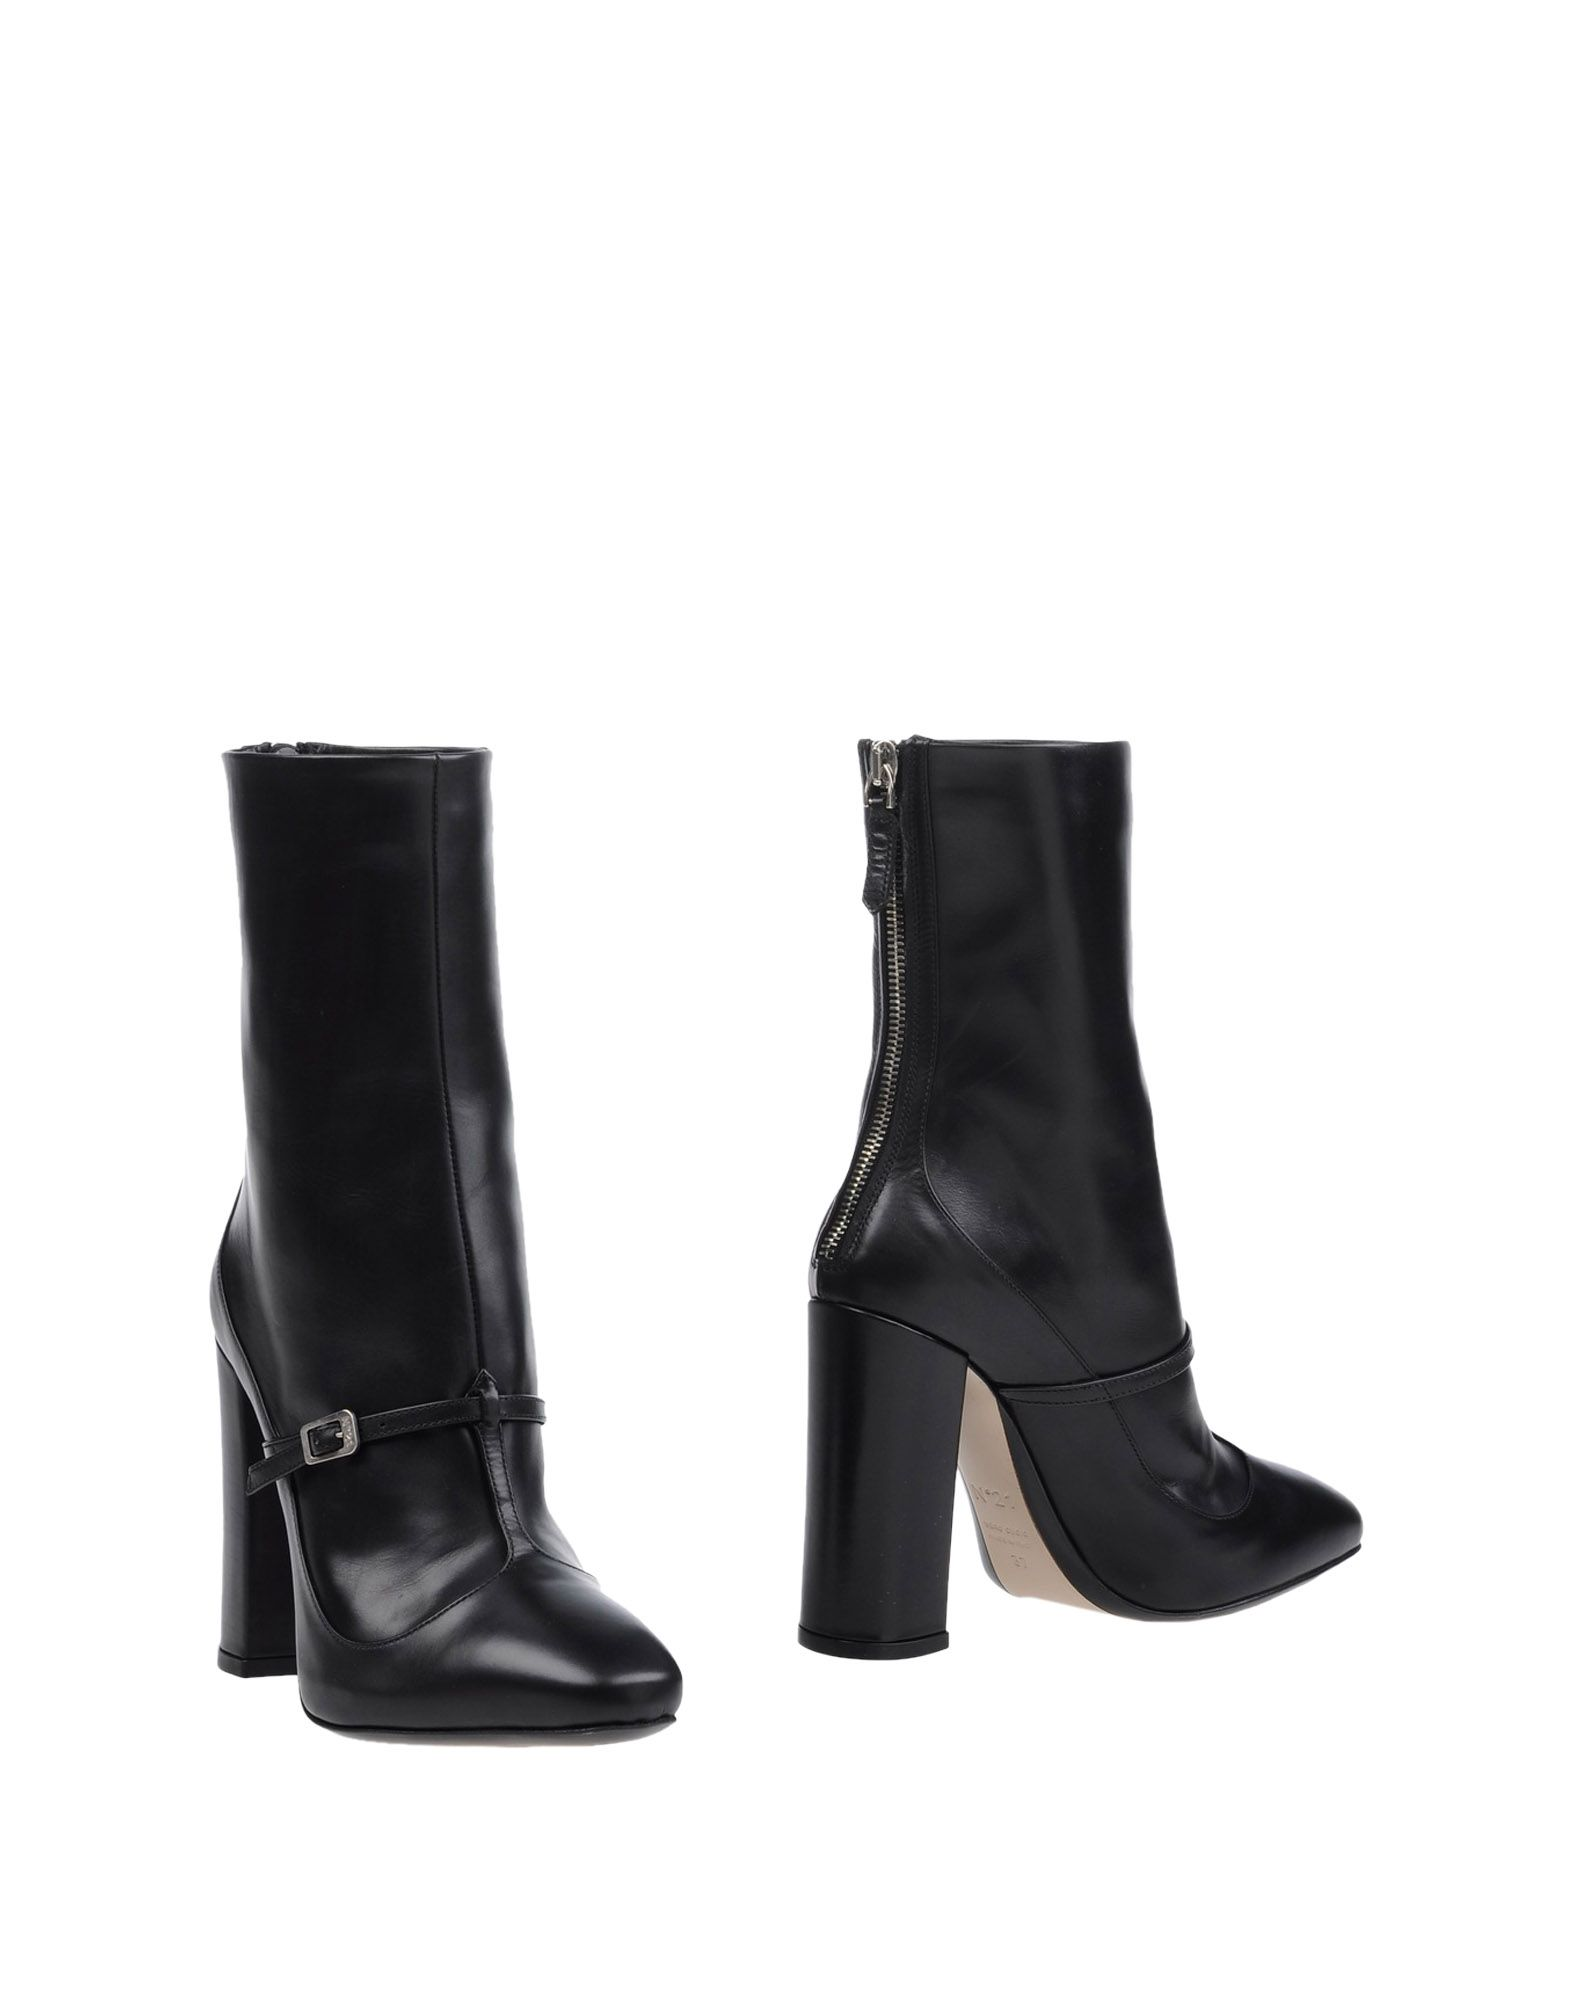 Bottine N° 21 Femme - Bottines N° 21 sur